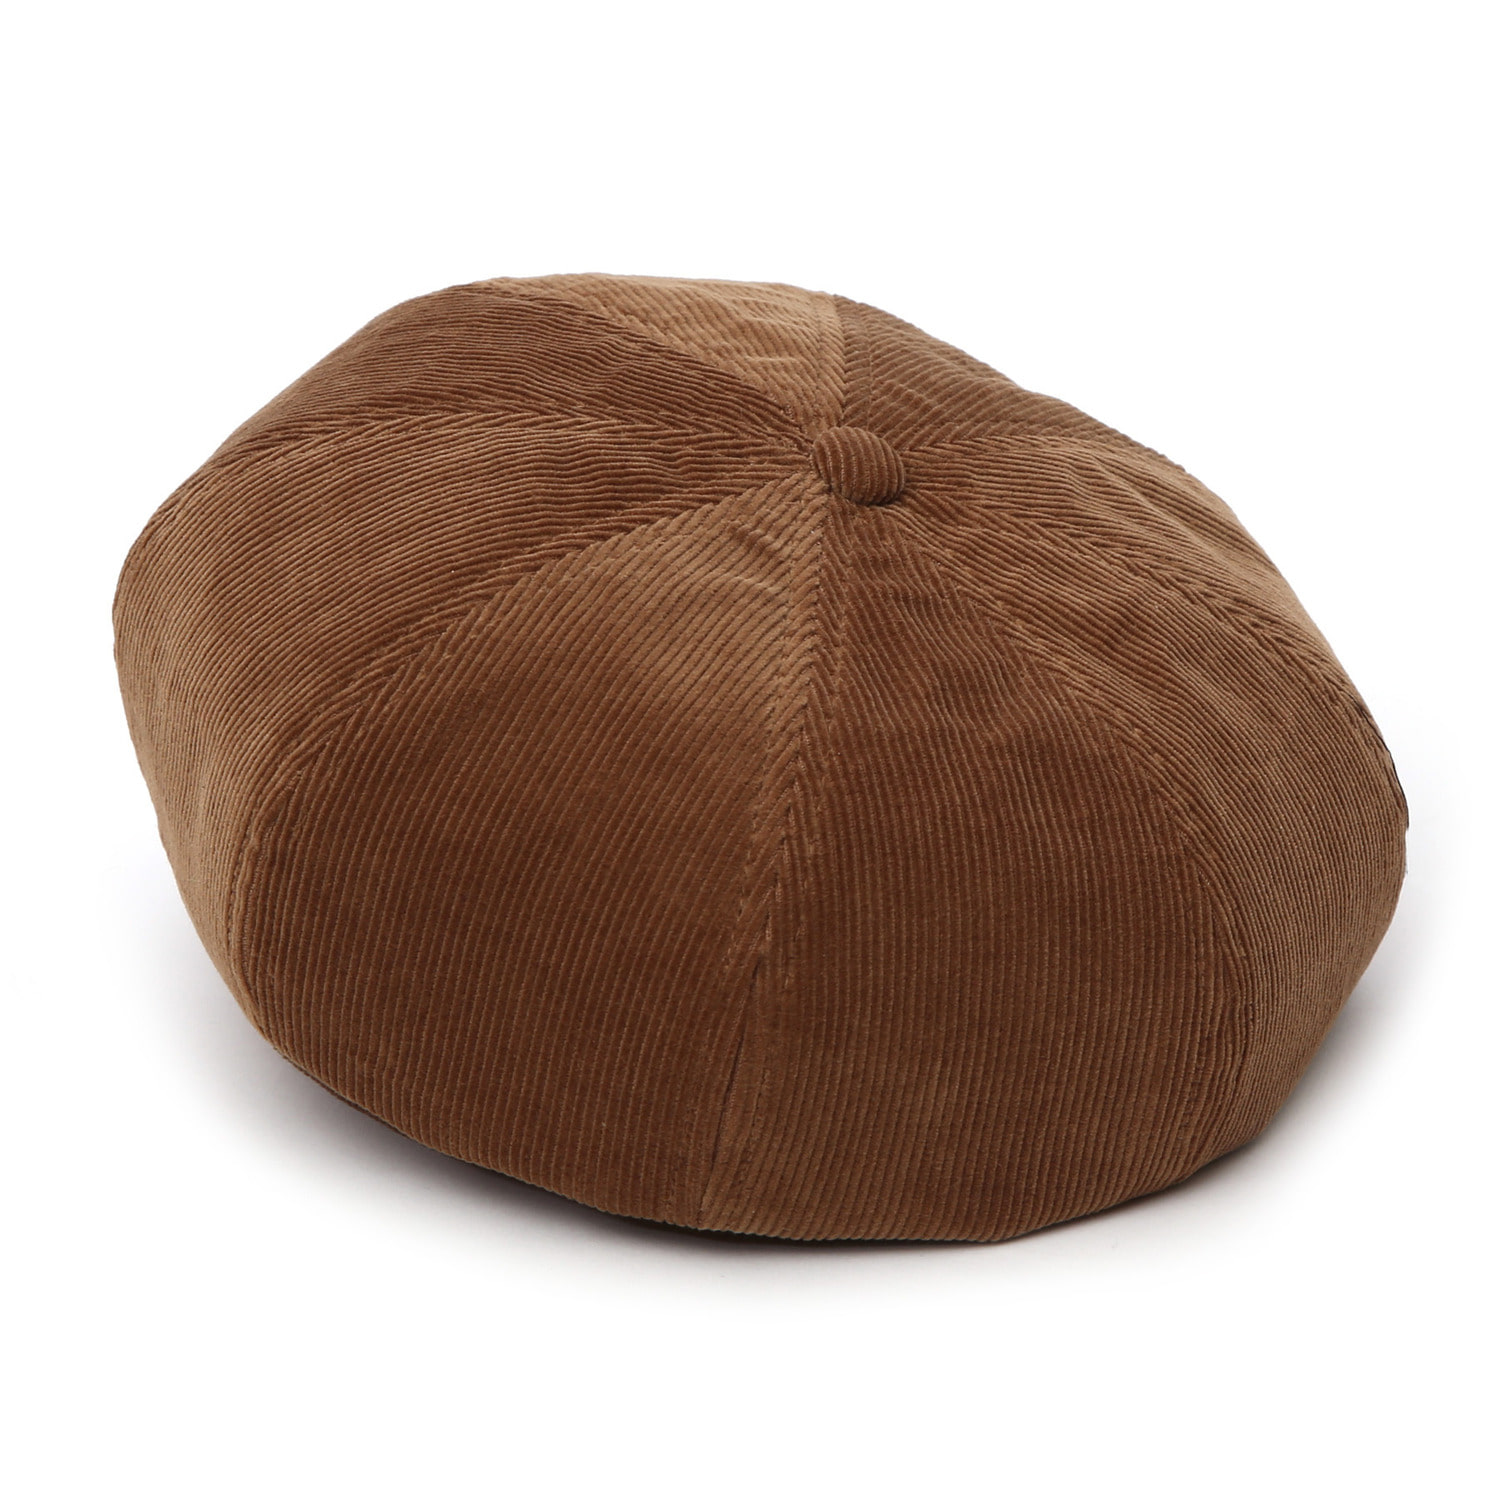 BREAD BERET / CORDUROY / FIELD BROWN